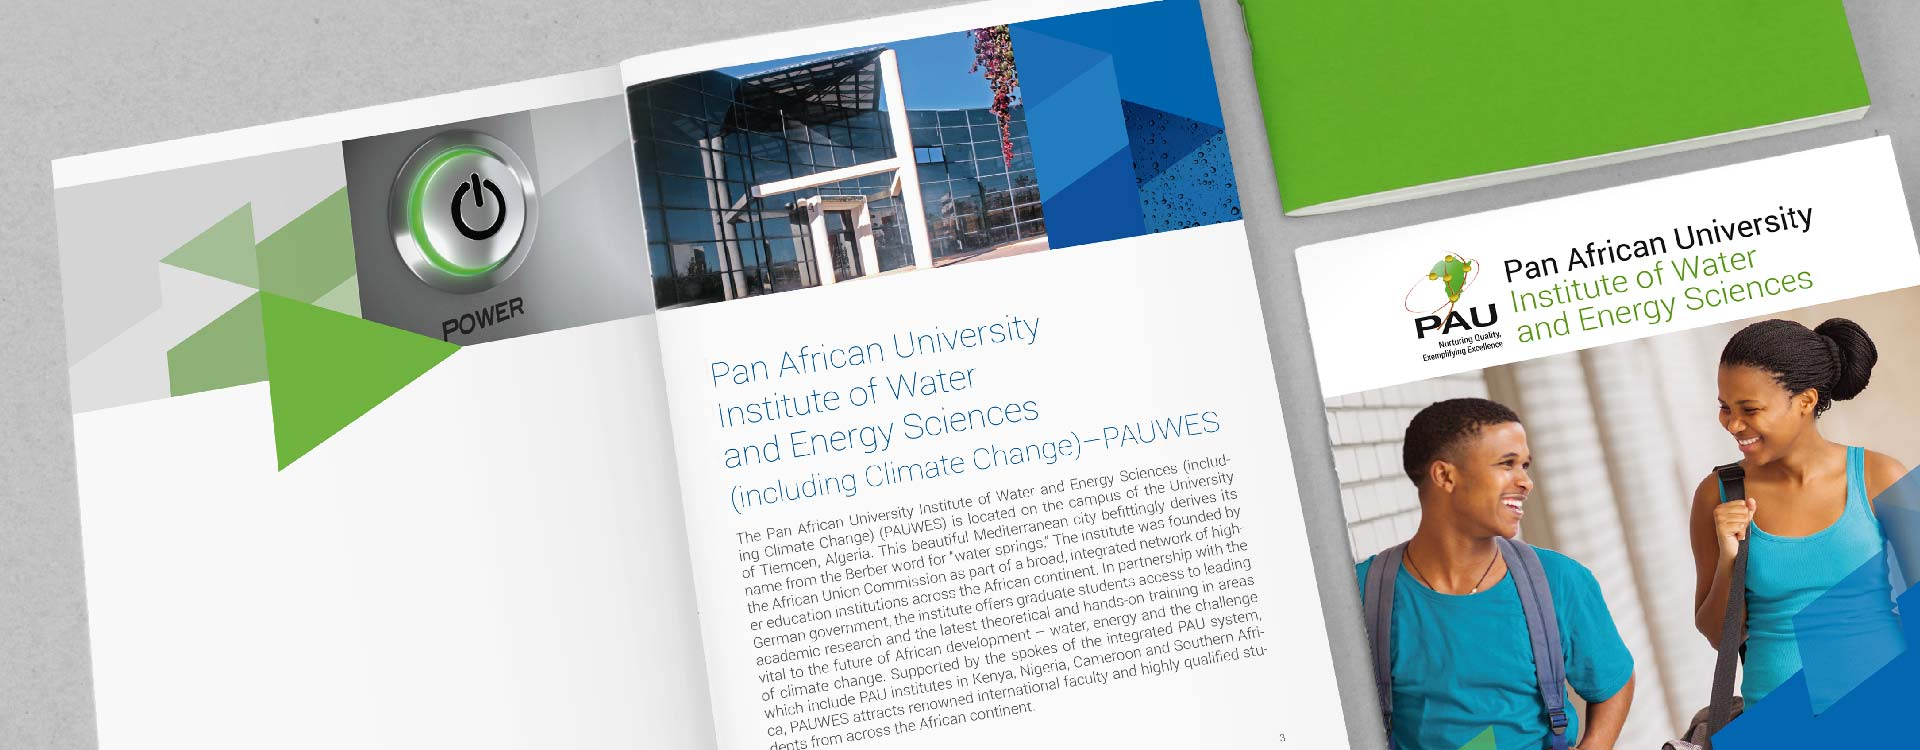 Front cover and inside of brochure of the Pan African University, Institute of Water and Energy Sciences PAUWES; Design: Kattrin Richter | Graphic Design Studio